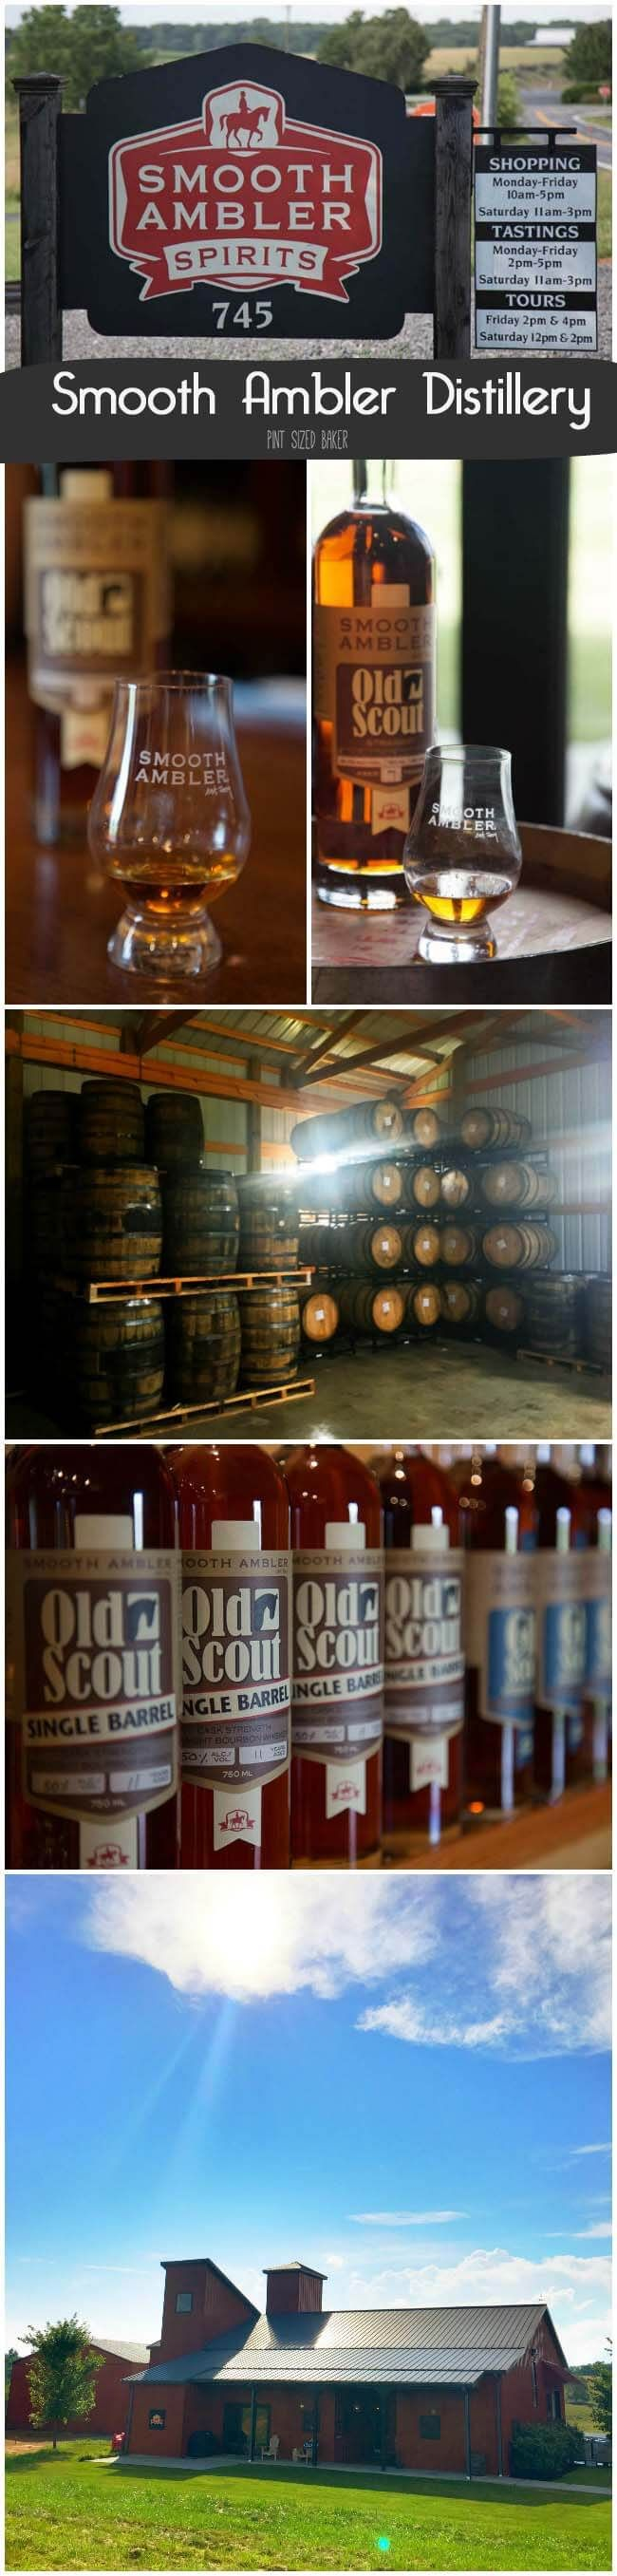 Know any Bourbon lovers? When in Greenbrier County, WV stop into Smooth Ambler Spirits for a tasting of their whiskey and bourbons and take a tour of the distillery.